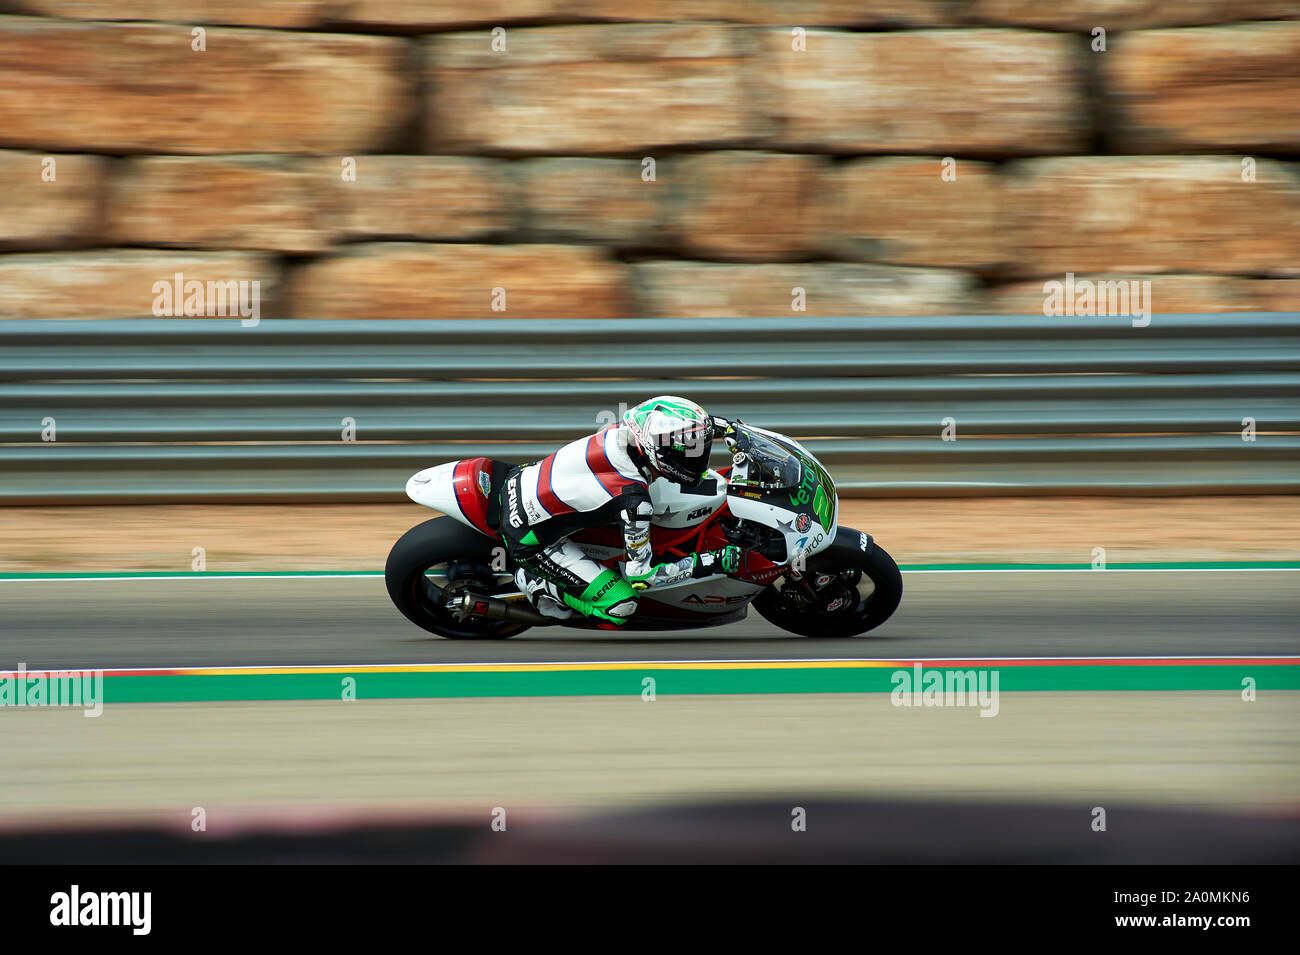 Iker Lecuona High Resolution Stock Photography And Images Alamy